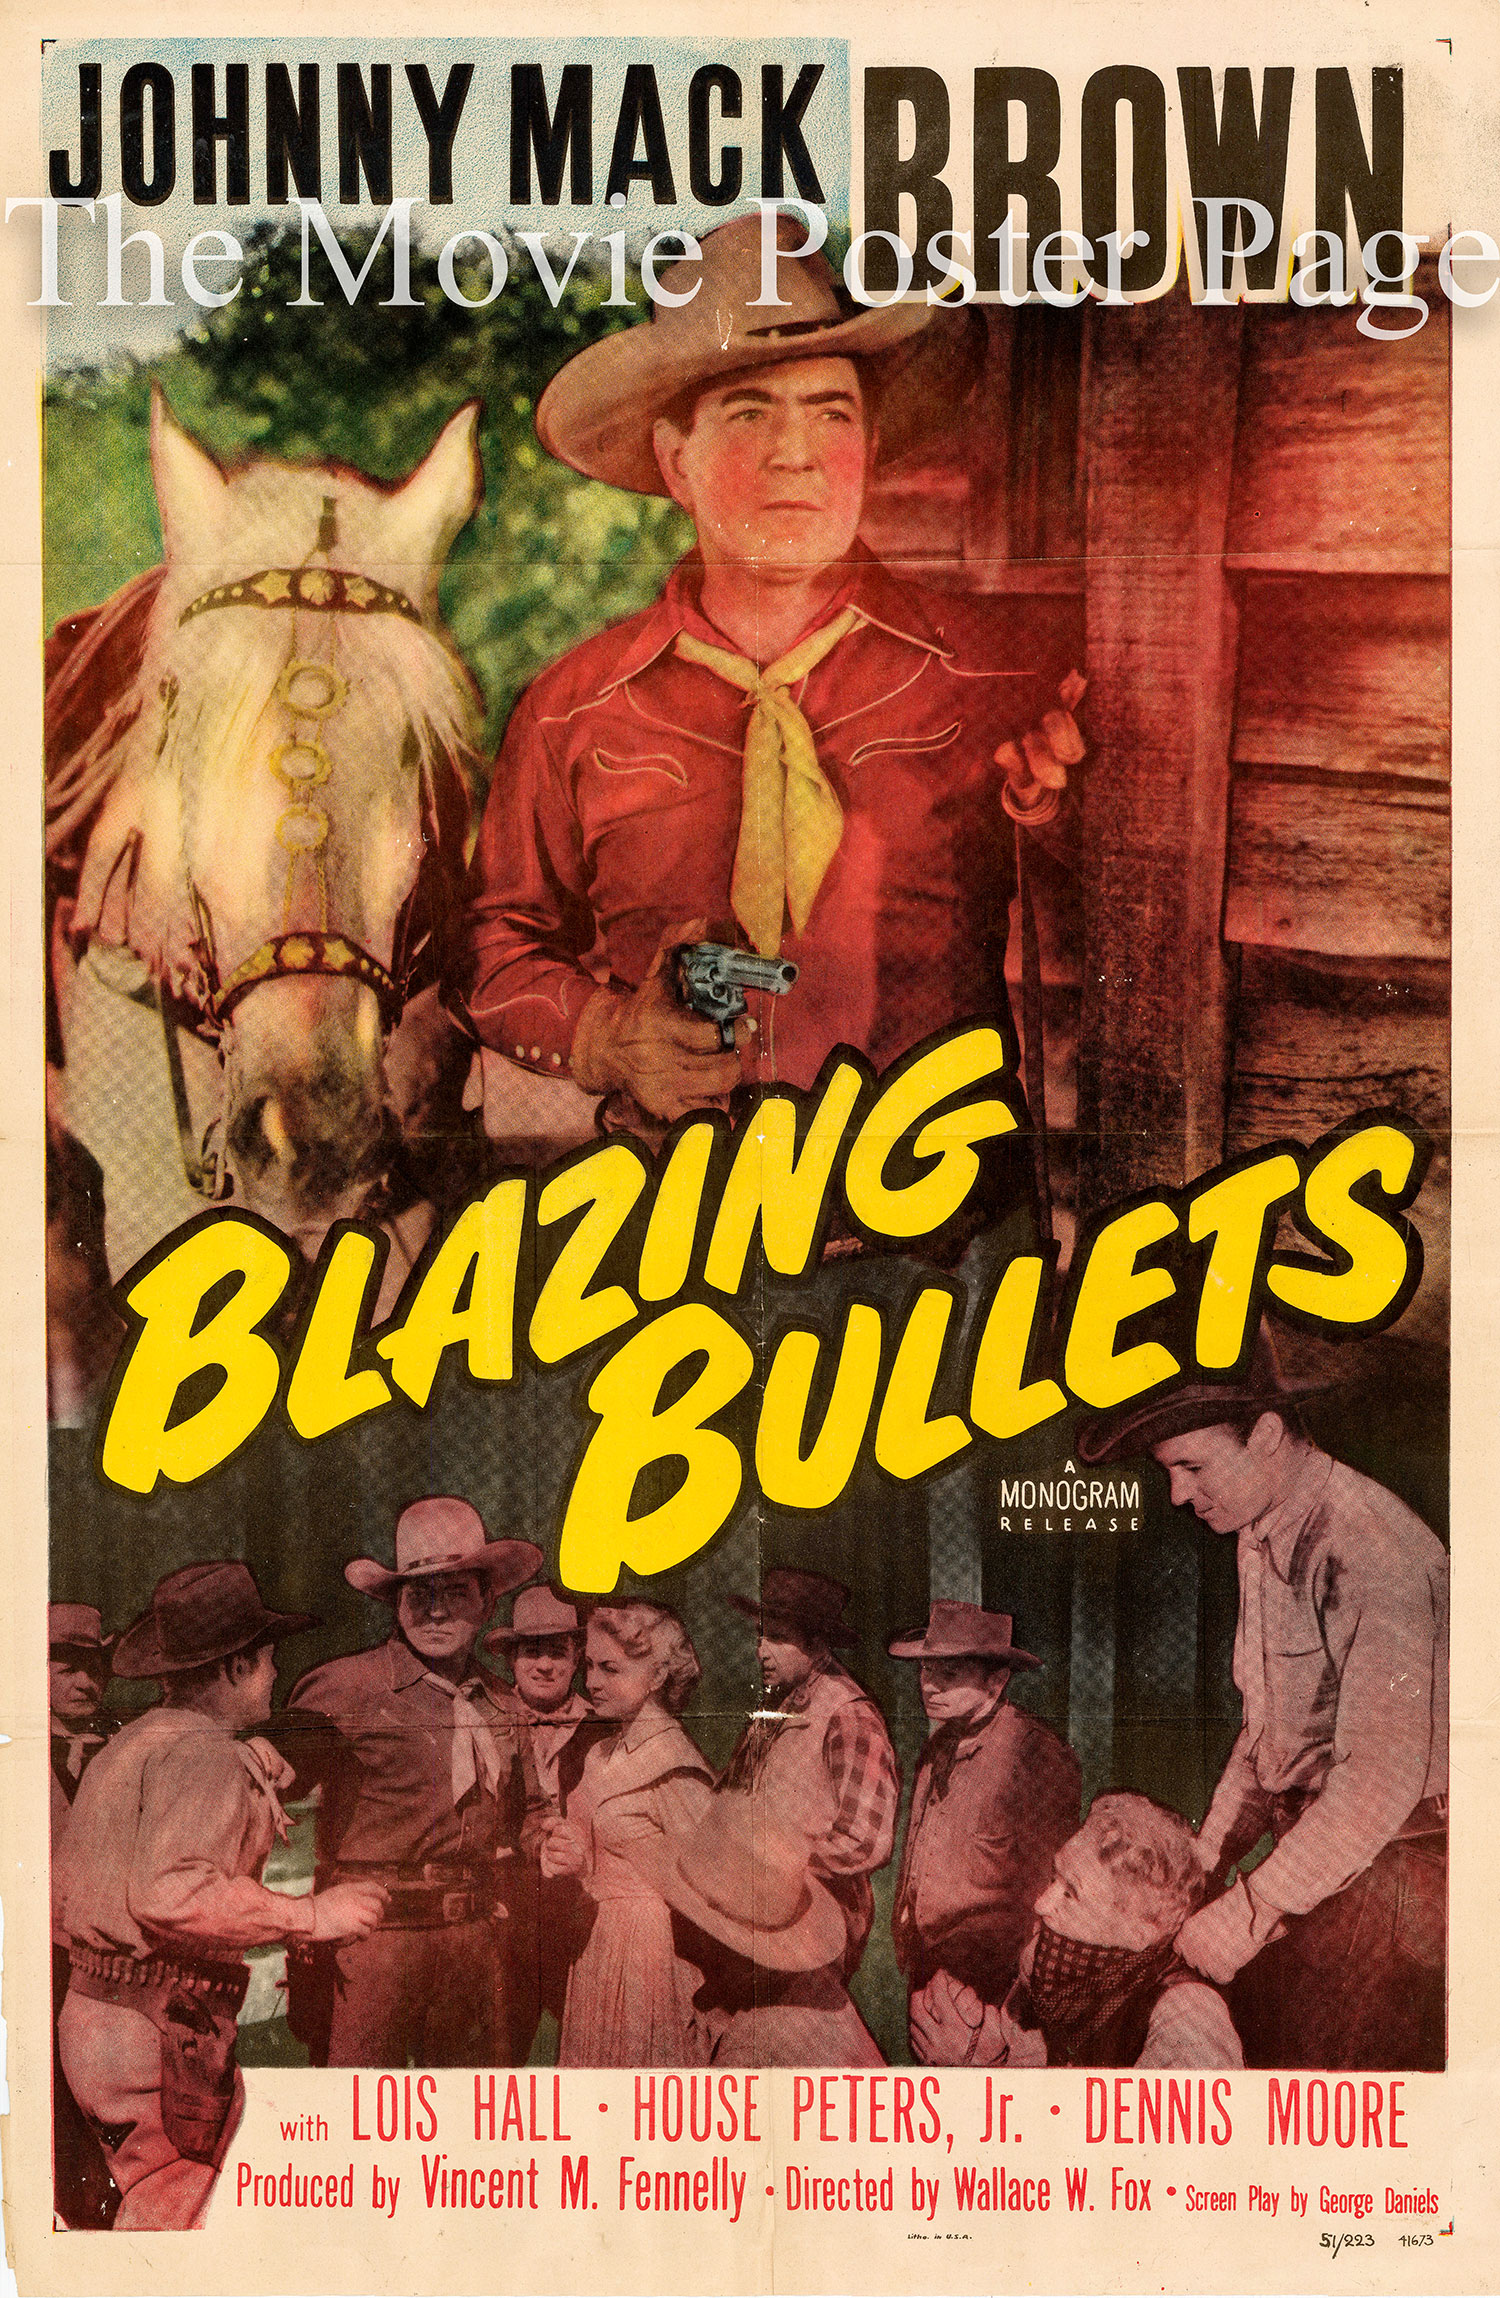 Pictured is a US one-sheet promotional poster for the 1951 Wallace Fox film Blazing Bullets starring Johnny Mack Brown.